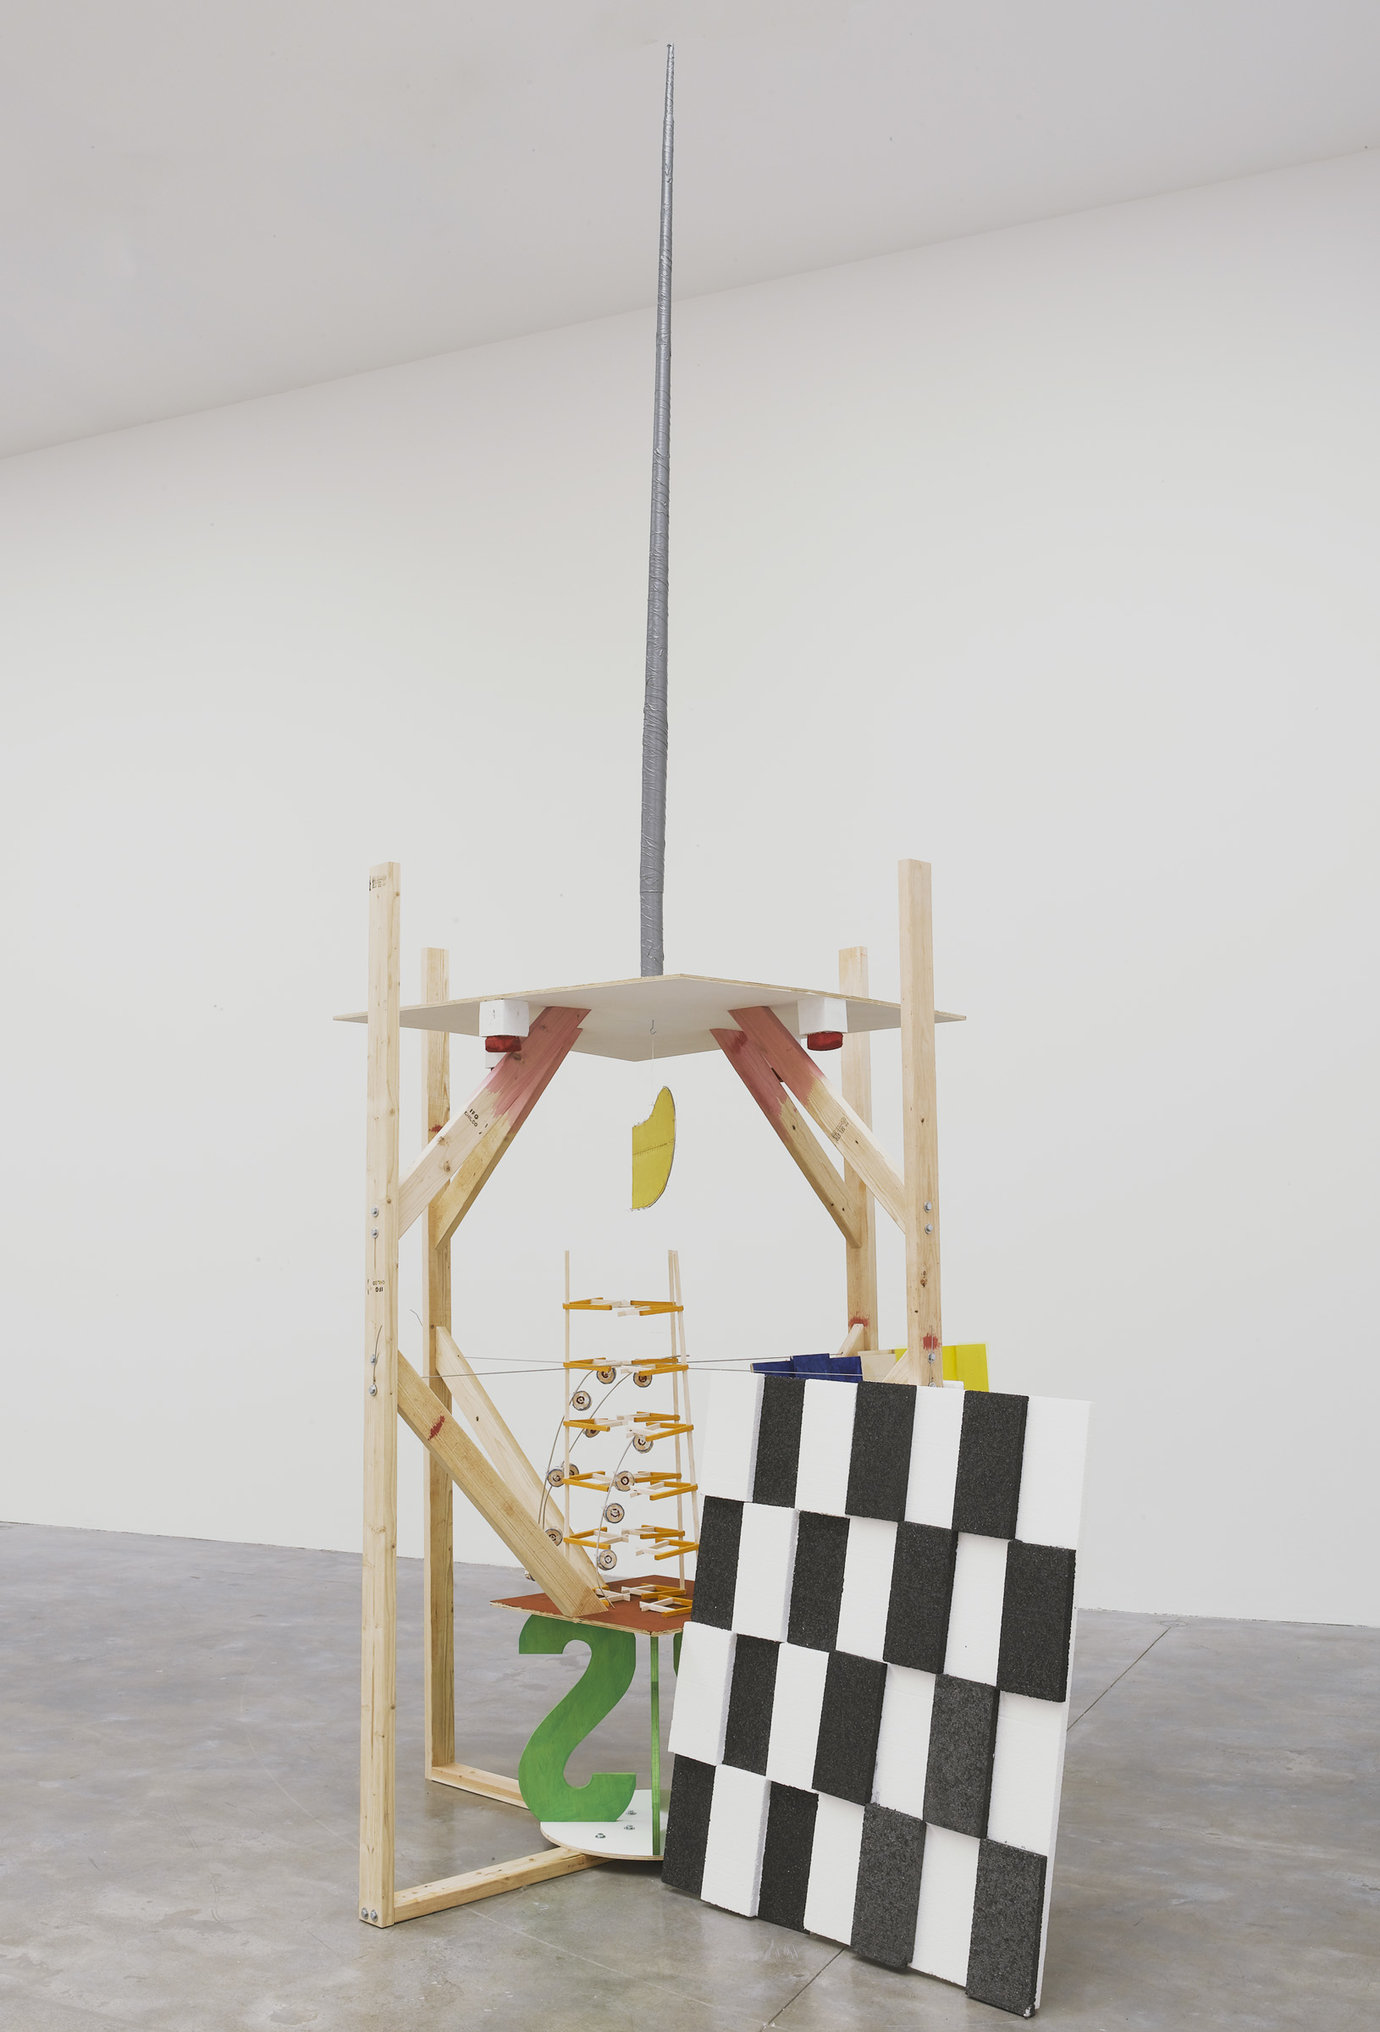 ", 2011. painted Styrofoam, black gesso, acrylic, balsa wood with acrylic, aluminum wire, monofilament, 16' 6"" x 92"" x 92"" (502.9 cm x 233.7 cm x 233.7 cm), overall dimensions variable."